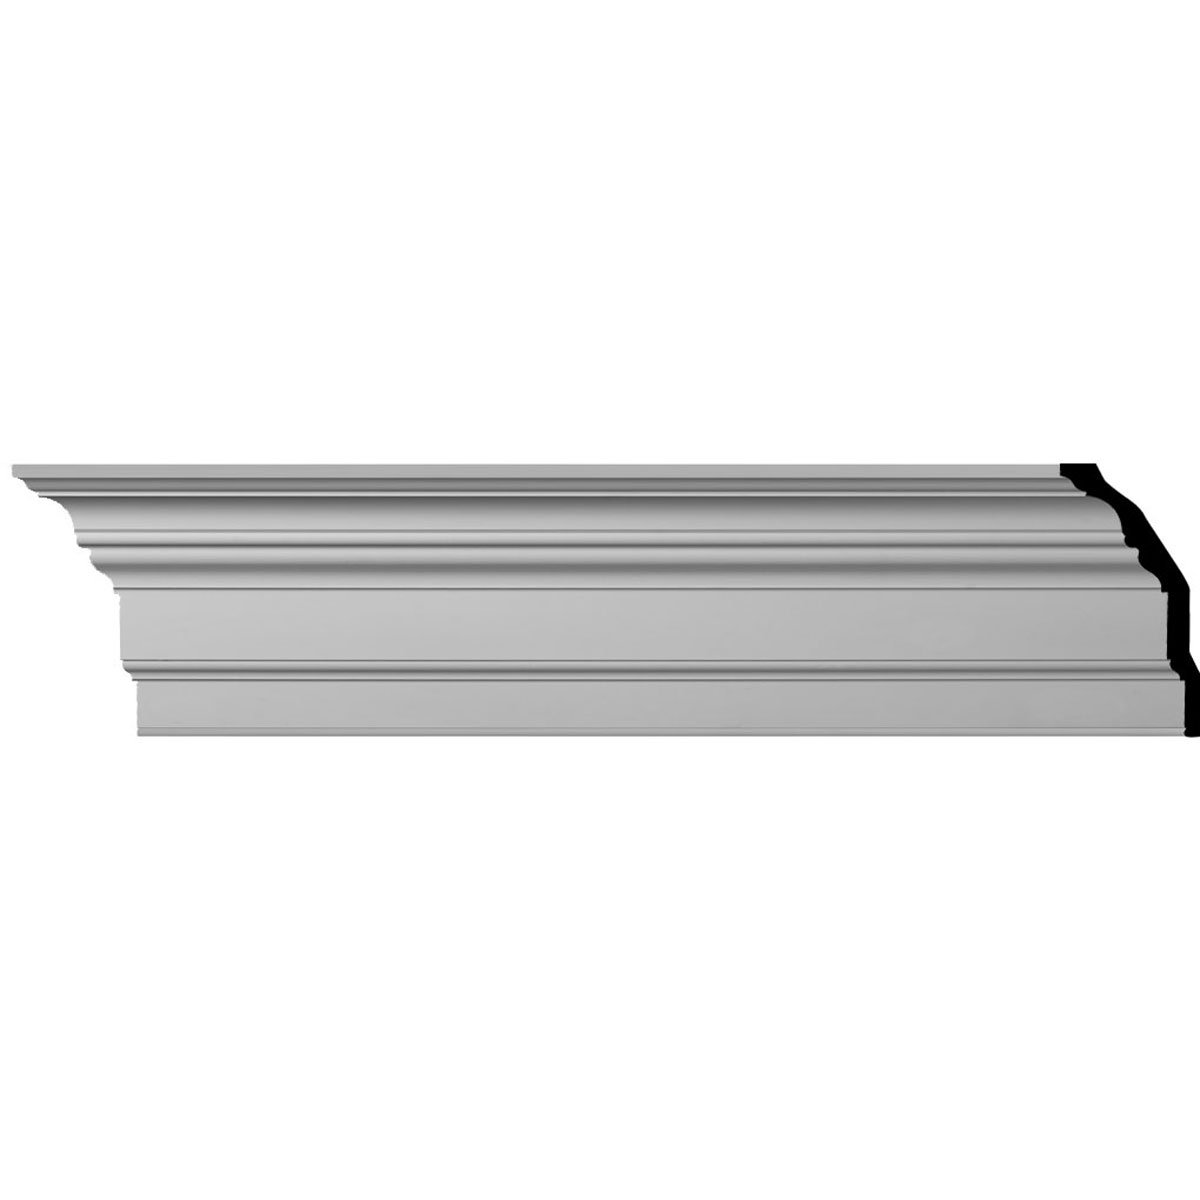 Ekena Millwork MLD13X07X12ER-CASE-12 13'' H x 6-7/8P x 14-5/8'' F x 96'' L Eris Smooth Crown Molding (12-Pack)